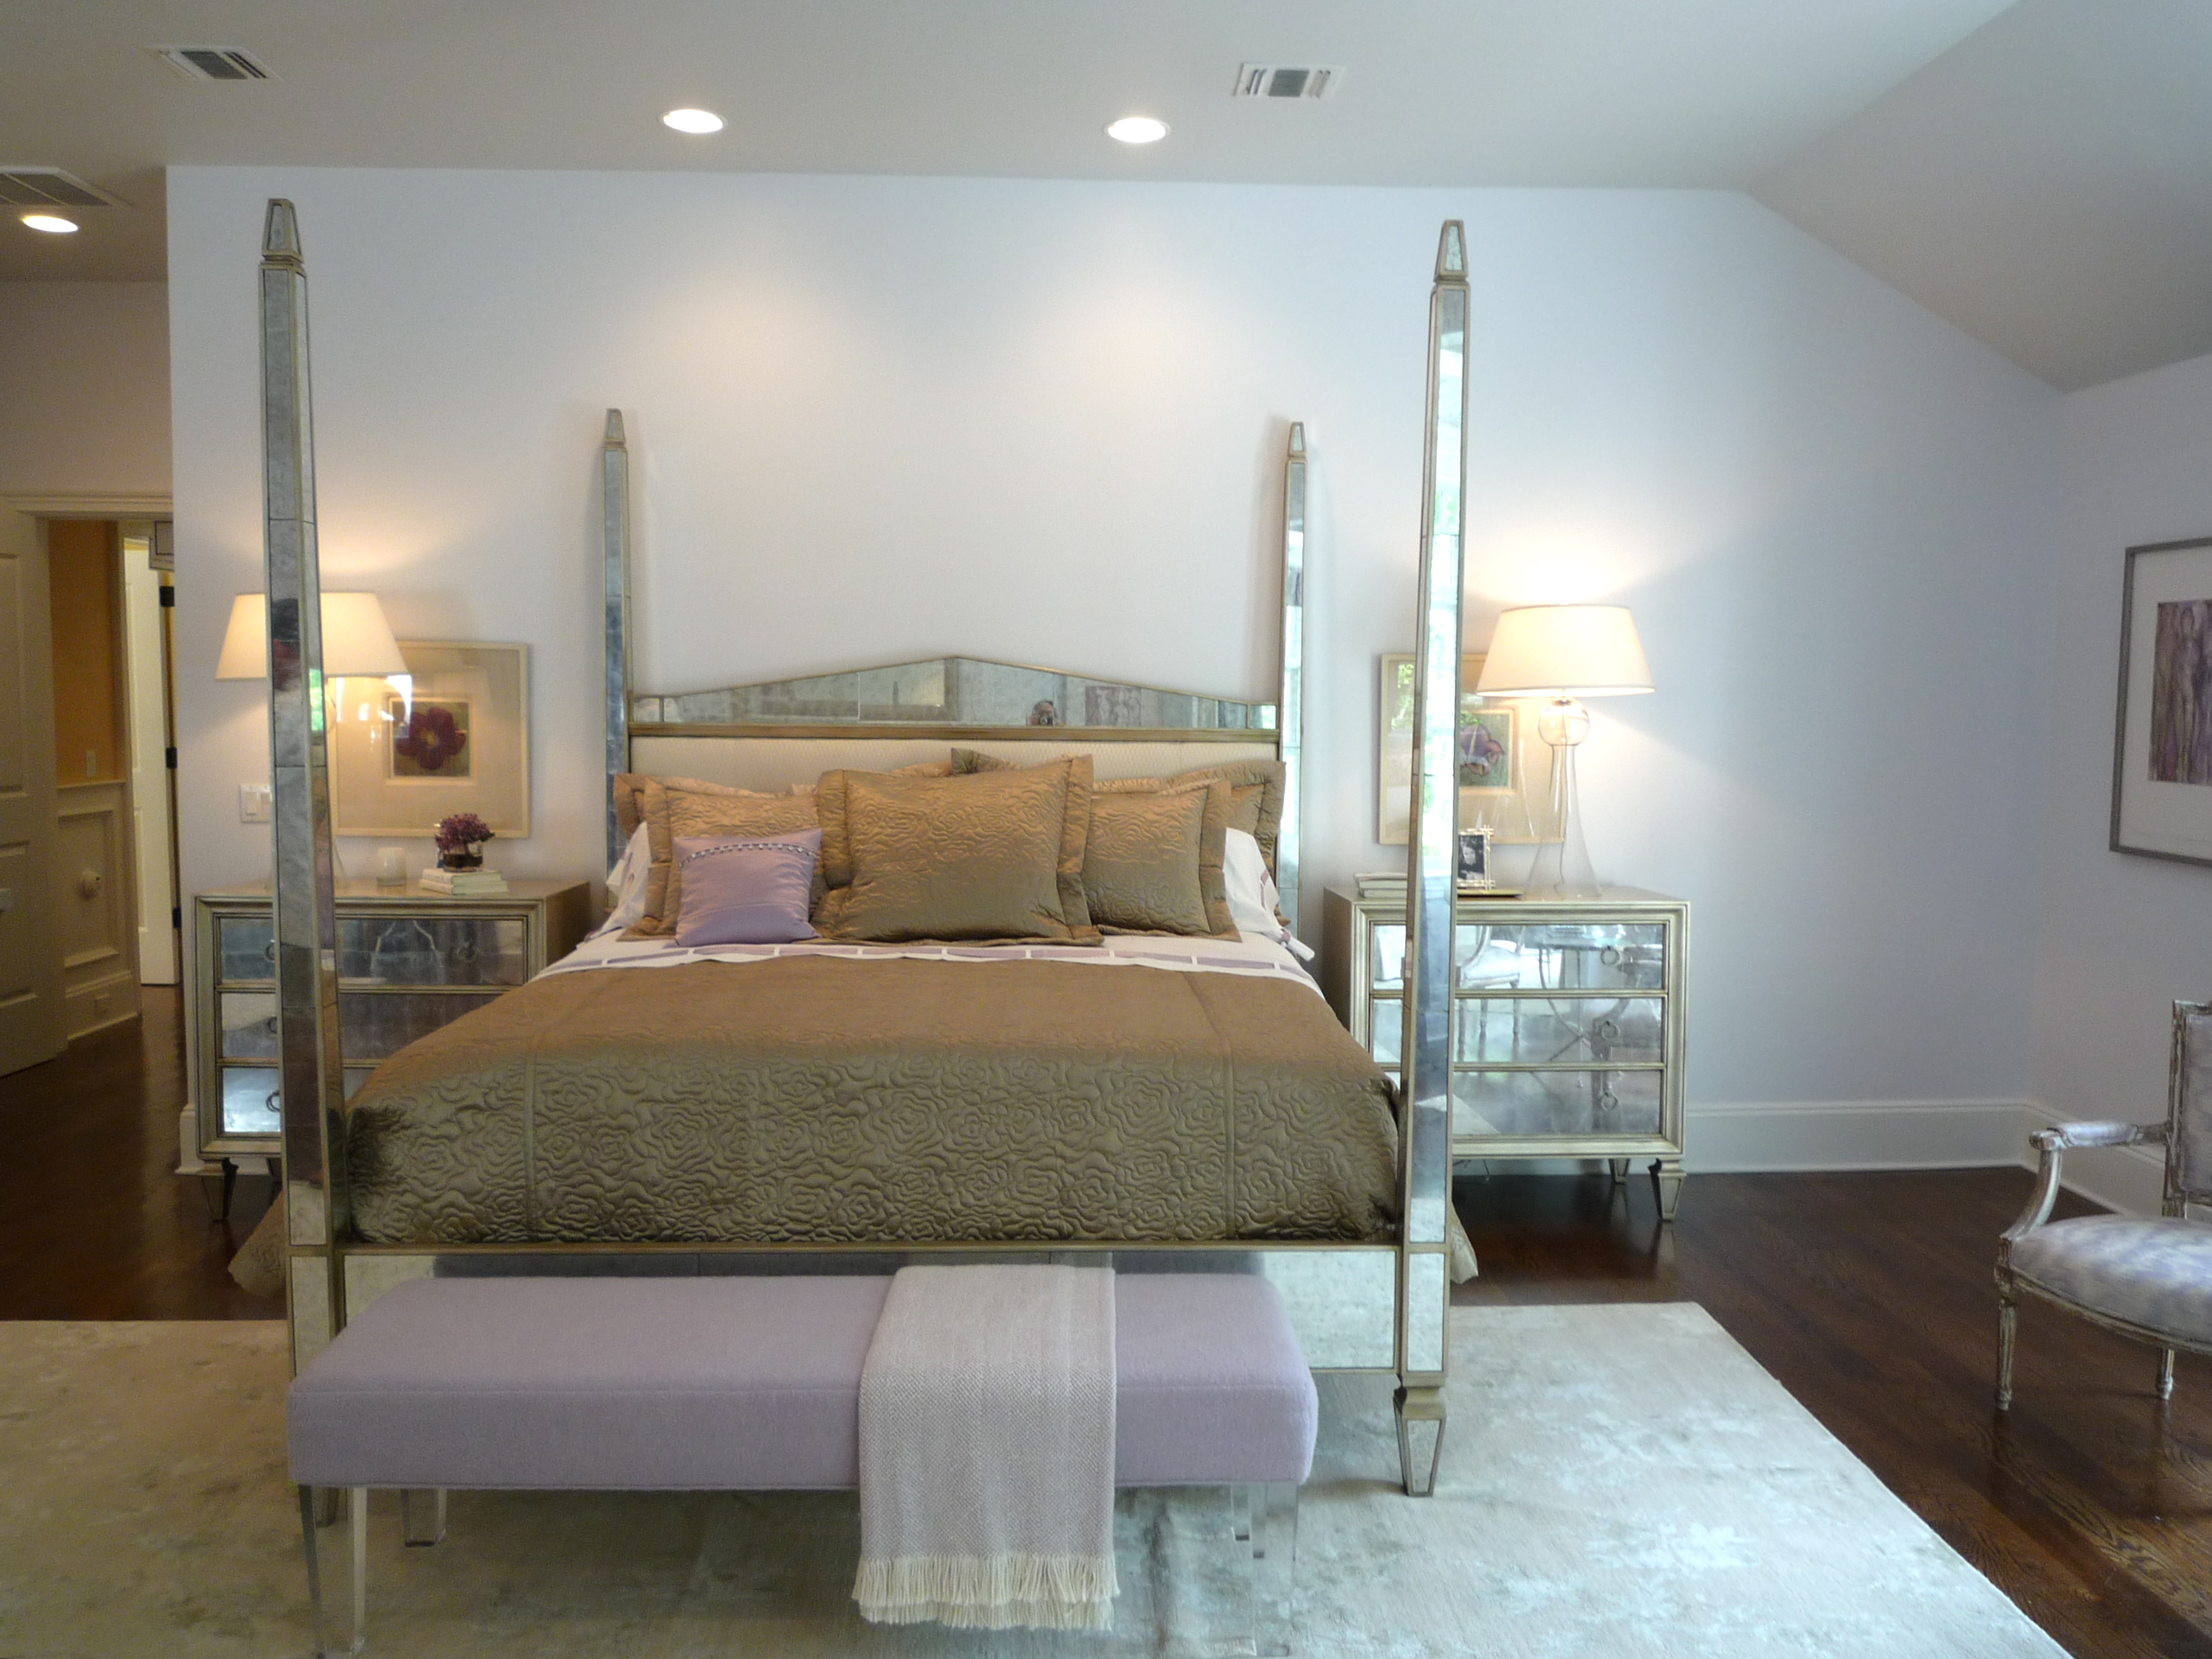 Mirrored Furniture For Bedroom Now Inside The Hampton Designer Showhouse Decor Arts Now